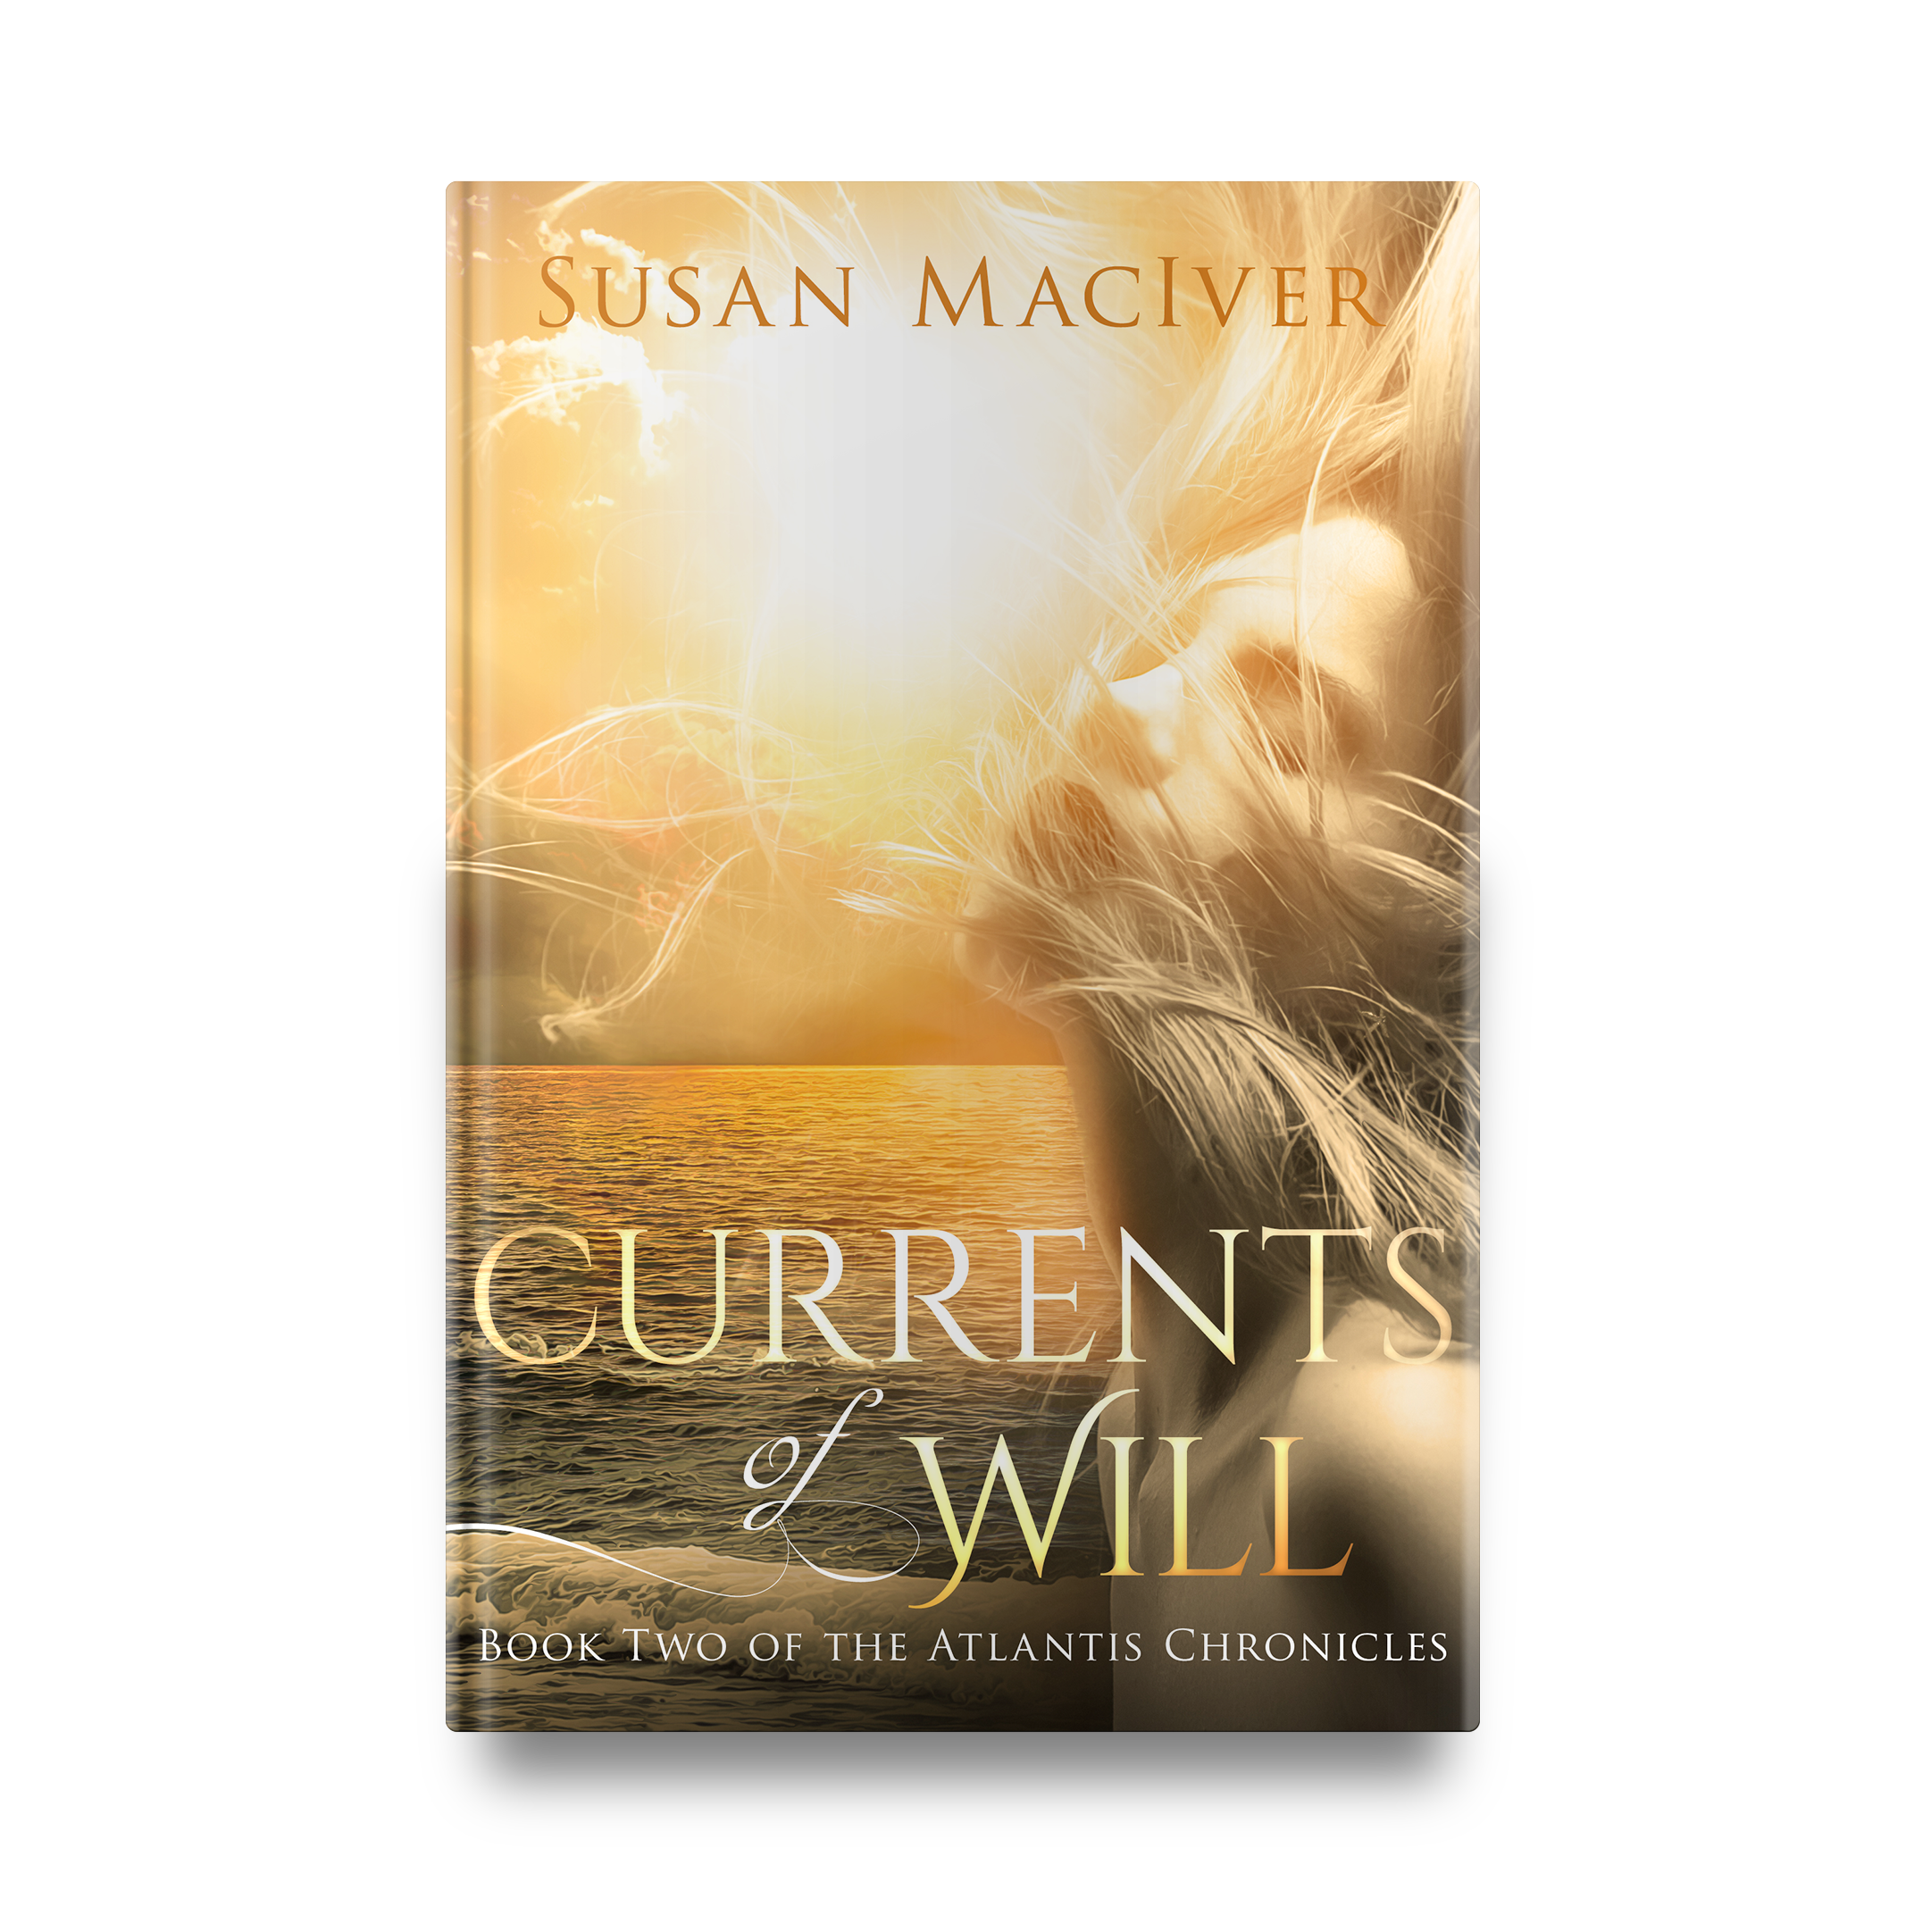 Susan MacIver's Currents of Will || Designed by TheThatchery.com